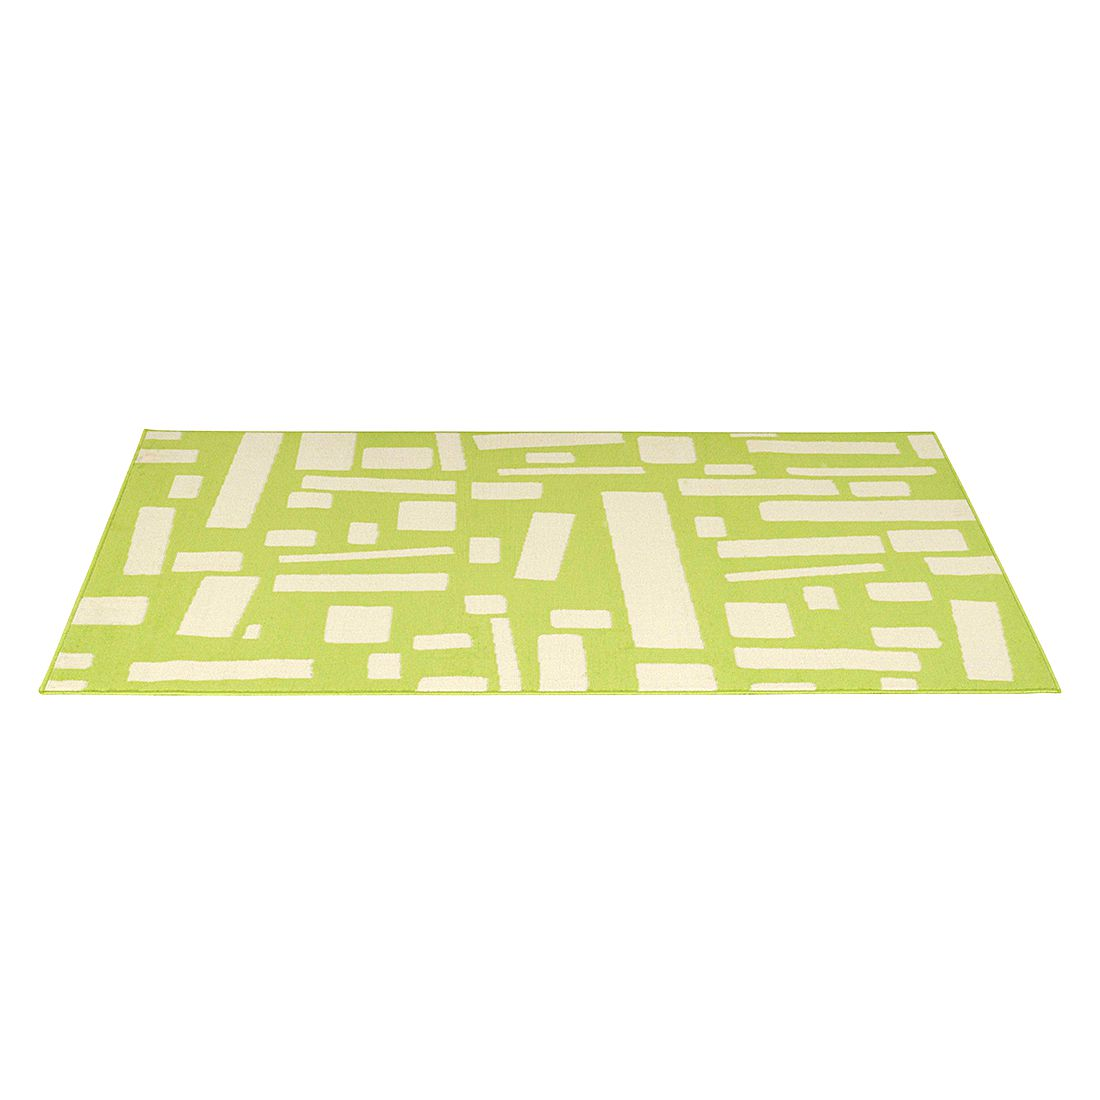 Tapijt Tetris - Groen - 200x290cm, Hanse Home Collection